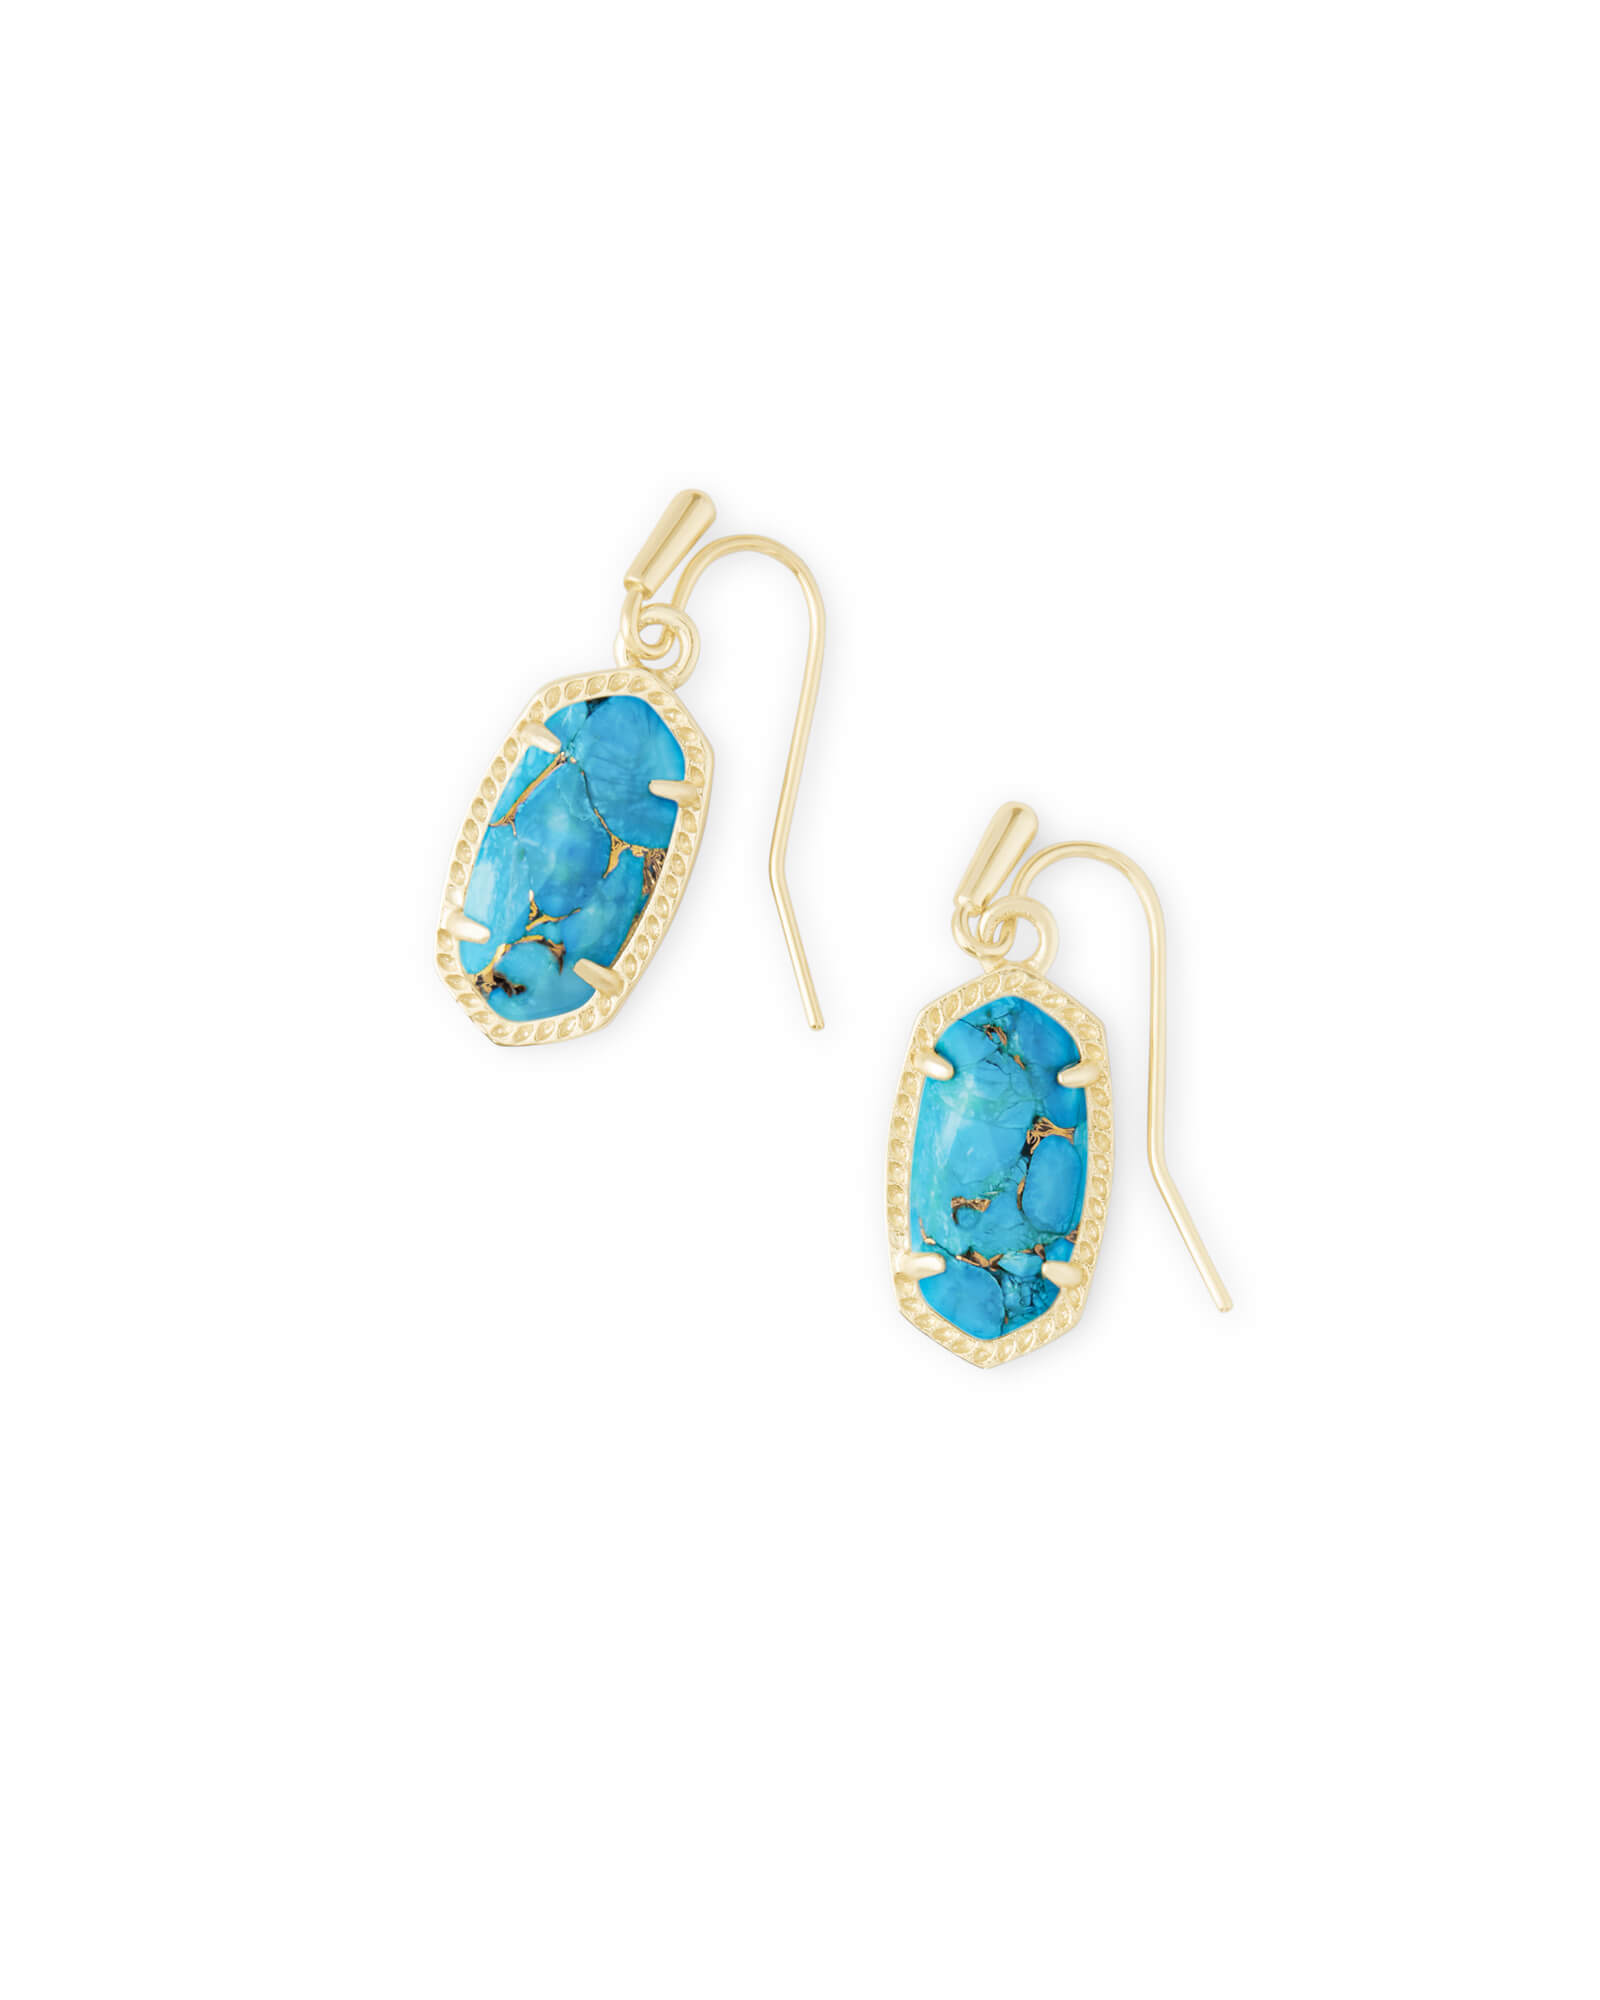 Lee Gold Drop Earrings in Bronze Veined Turquoise Magnesite